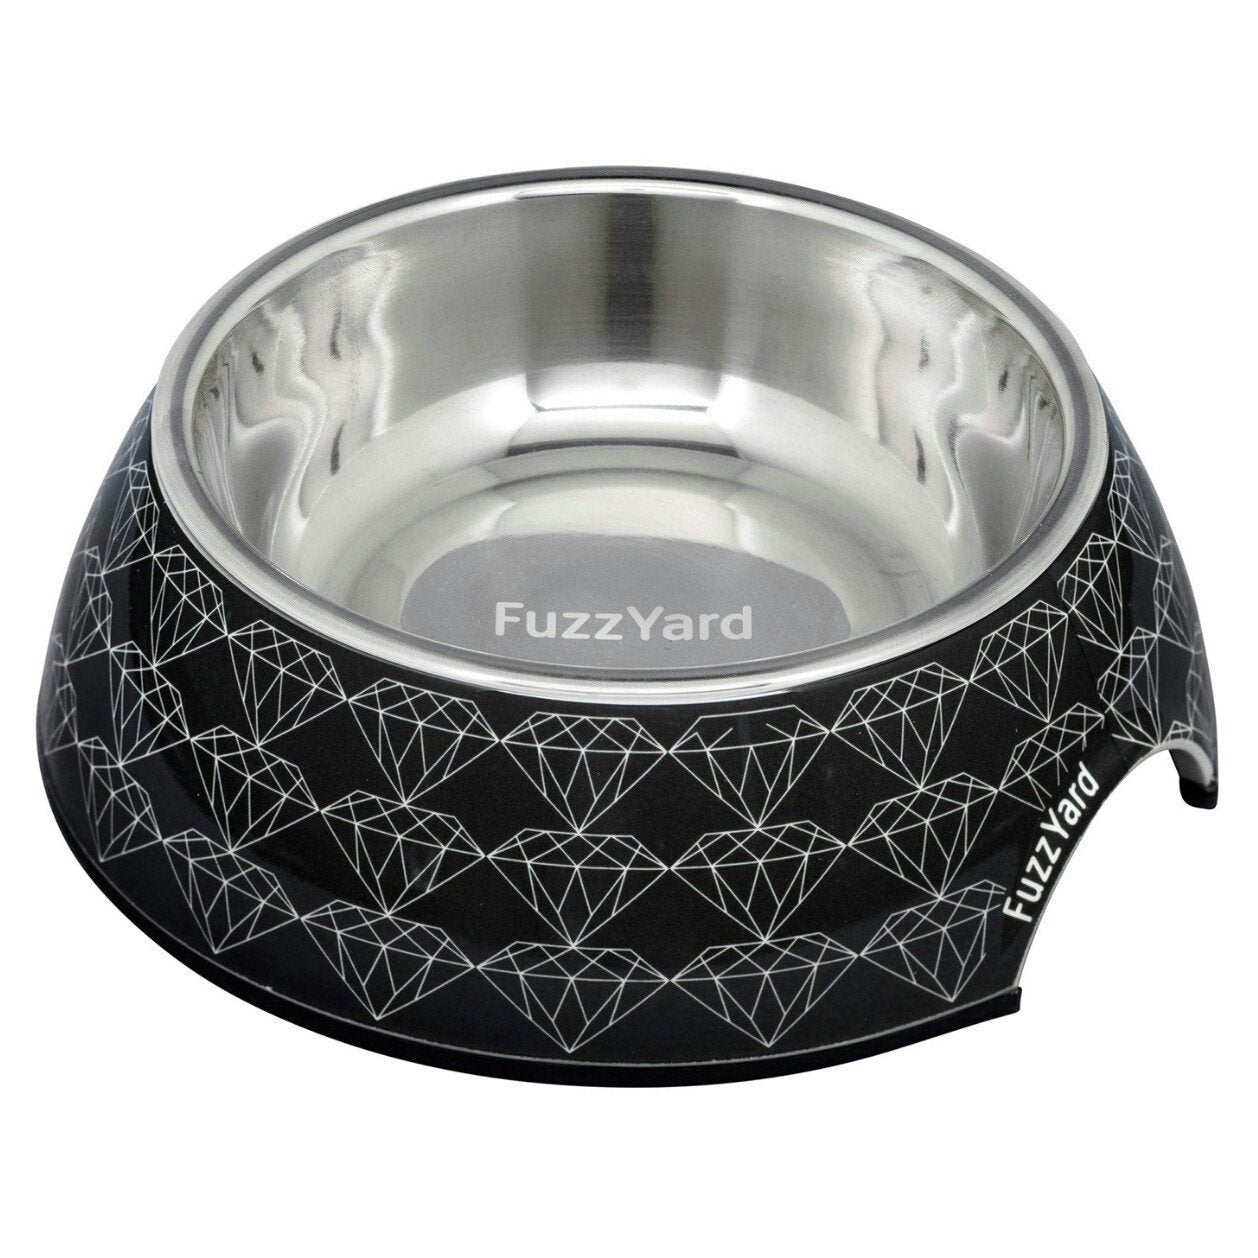 15% OFF: FuzzYard Black Diamond Melamine Dog Feeding Bowl